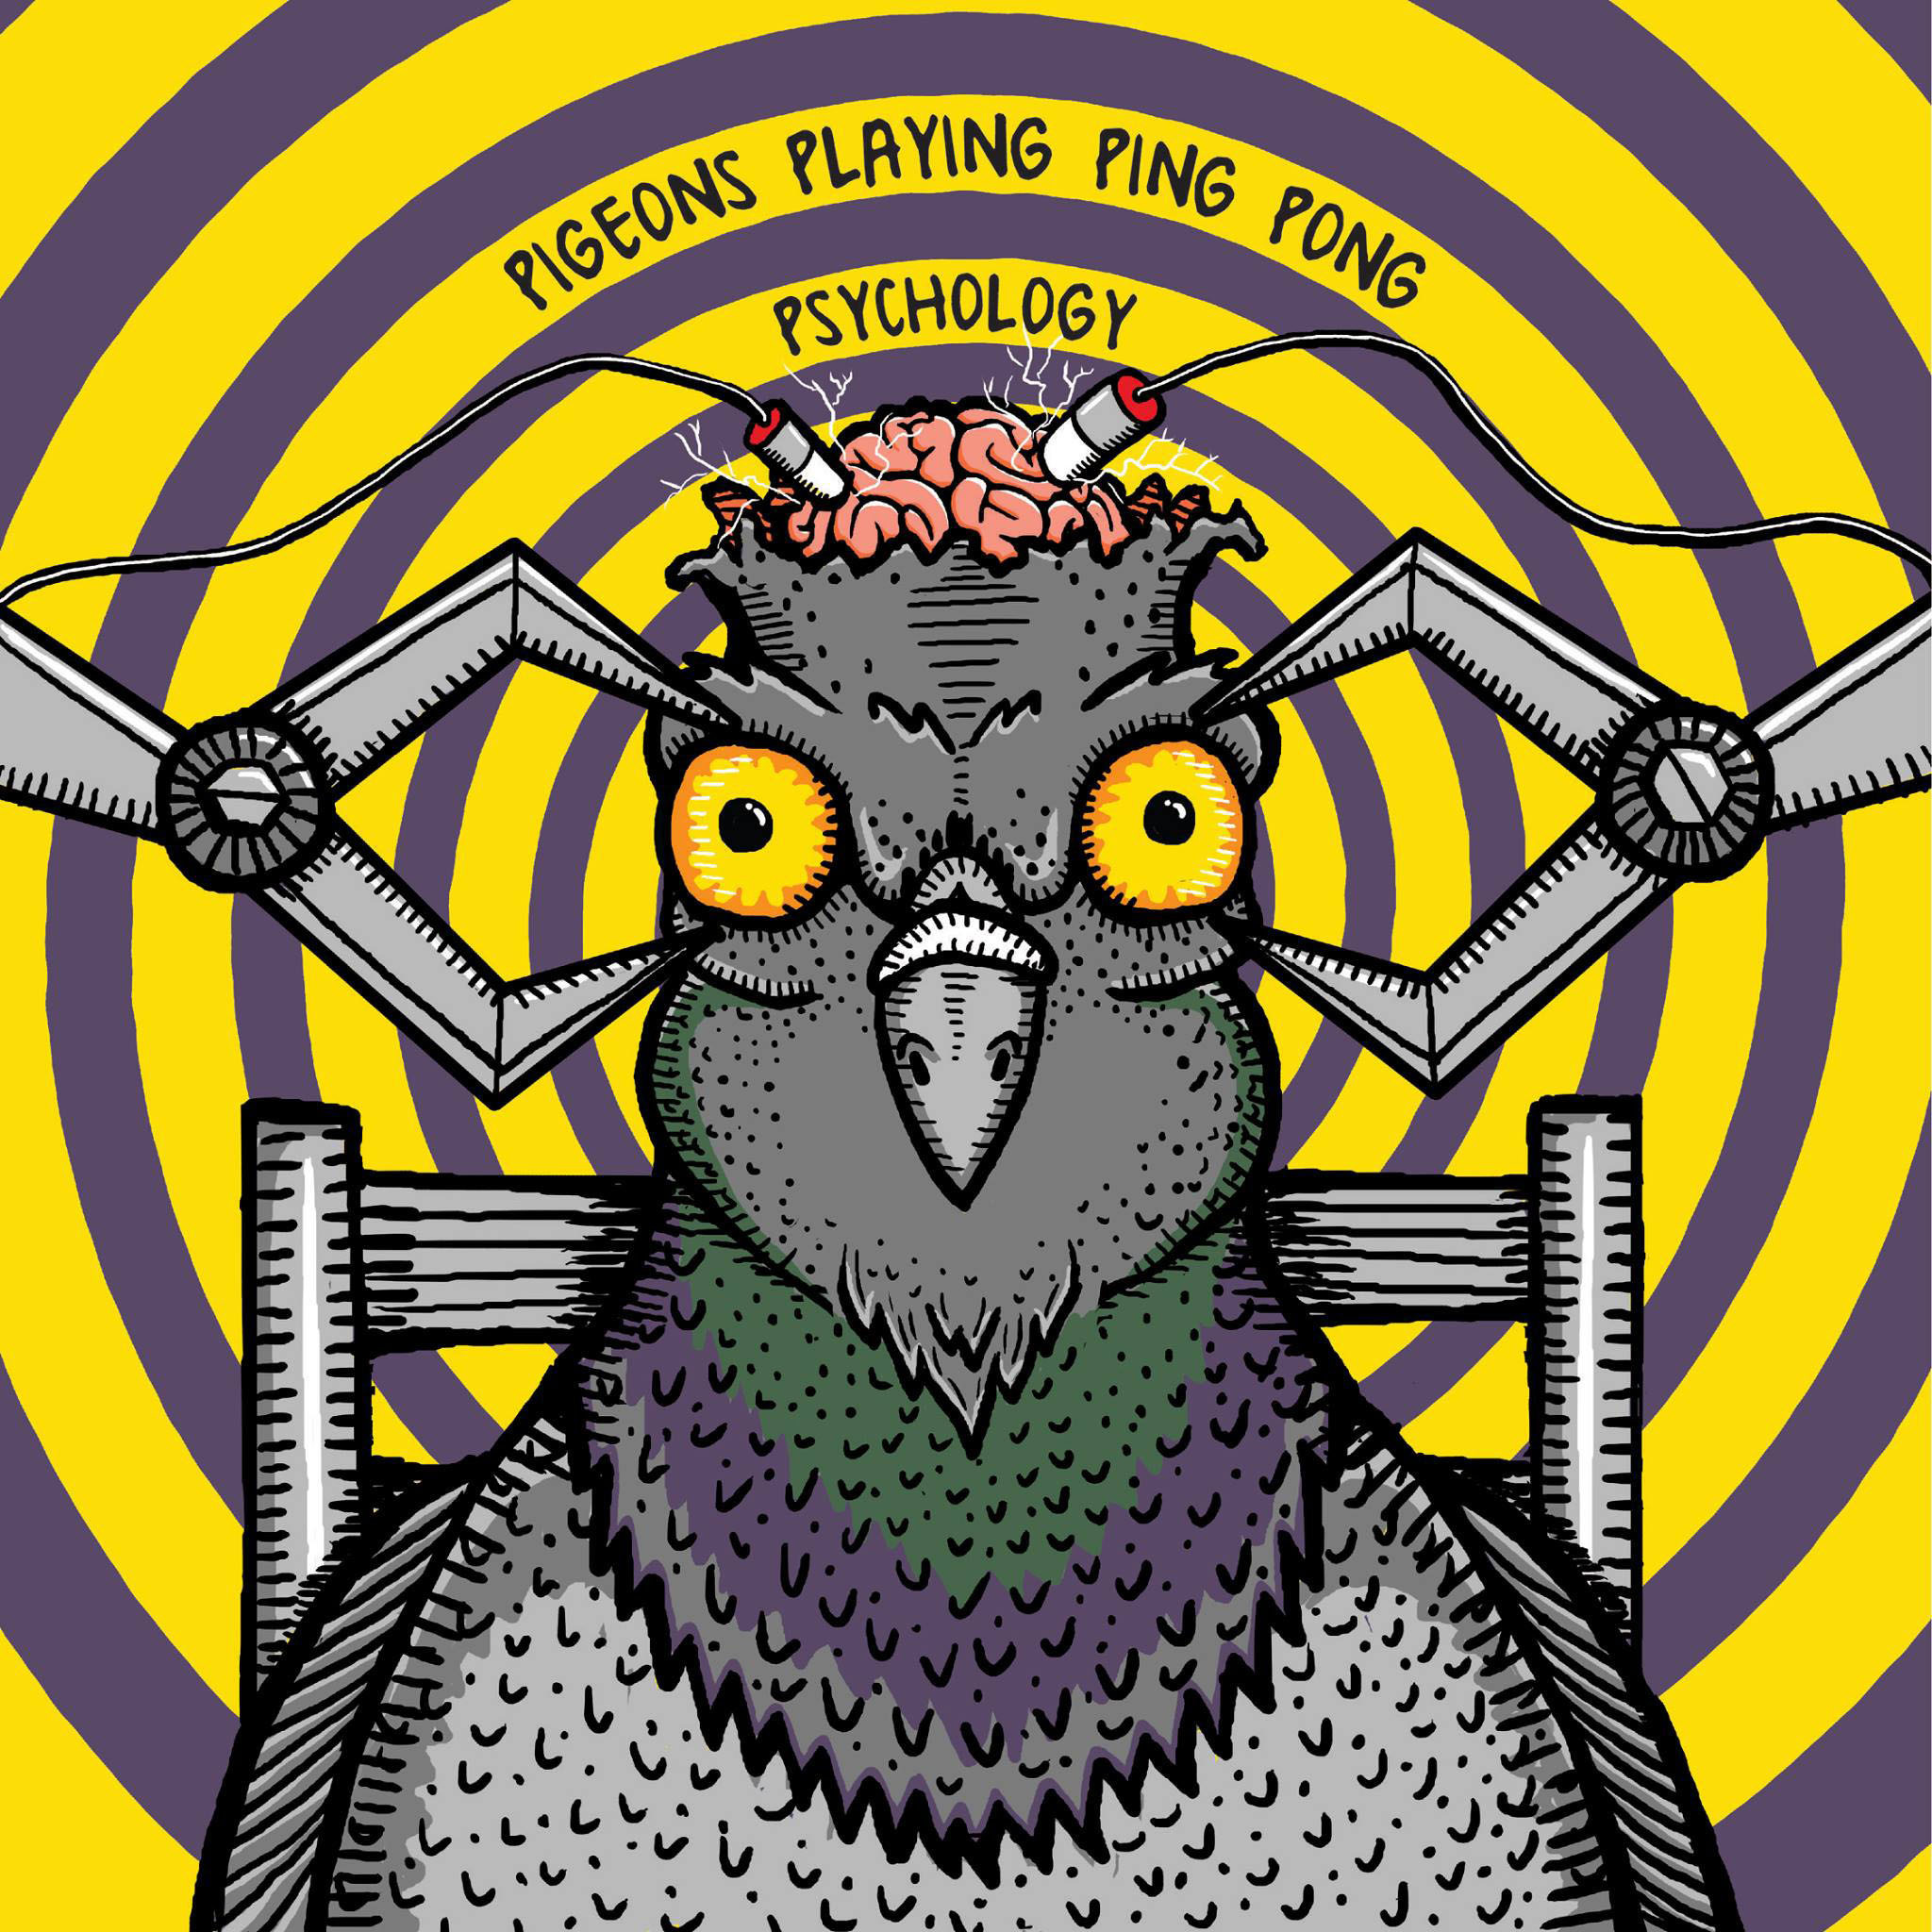 Baltimore album reviews [Pictures] - Pigeons Playing Ping Pong,